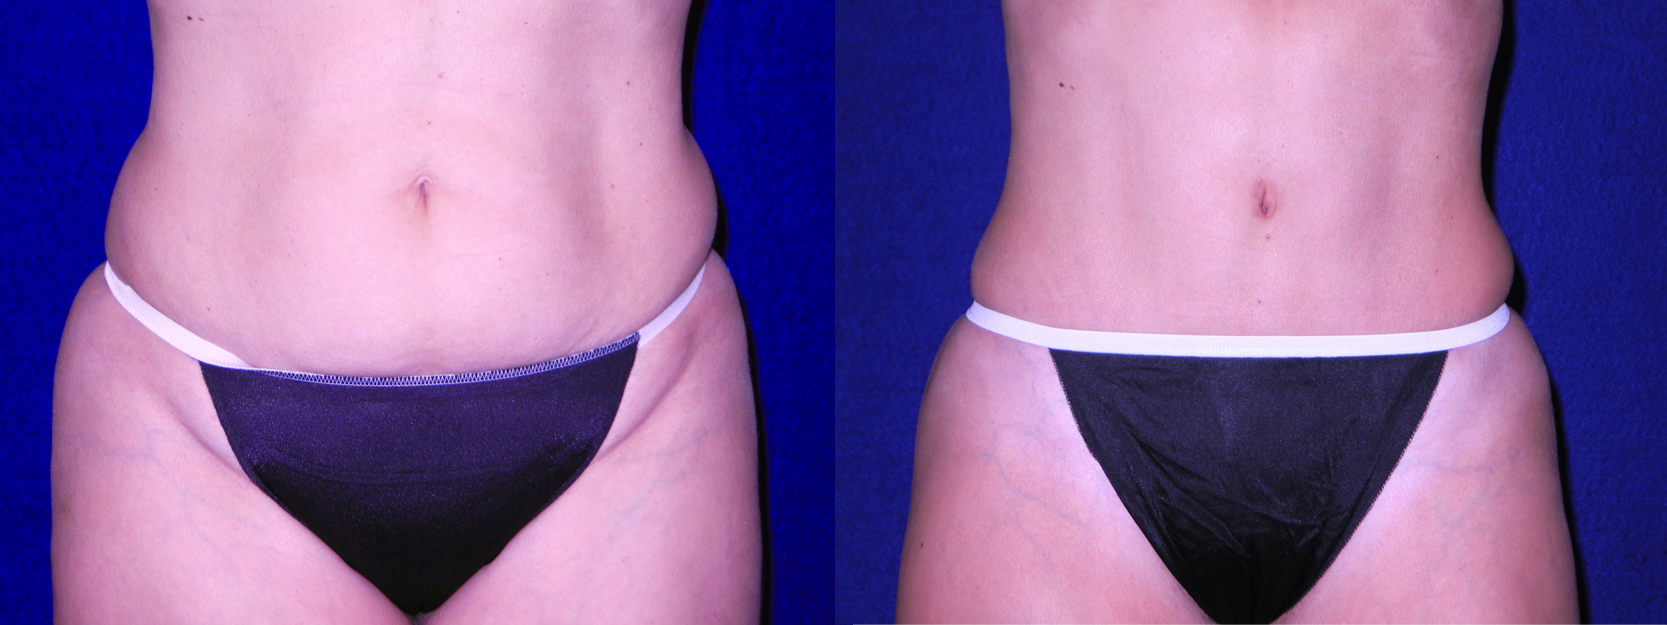 Frontal View - Tummy Tuck and Liposuction